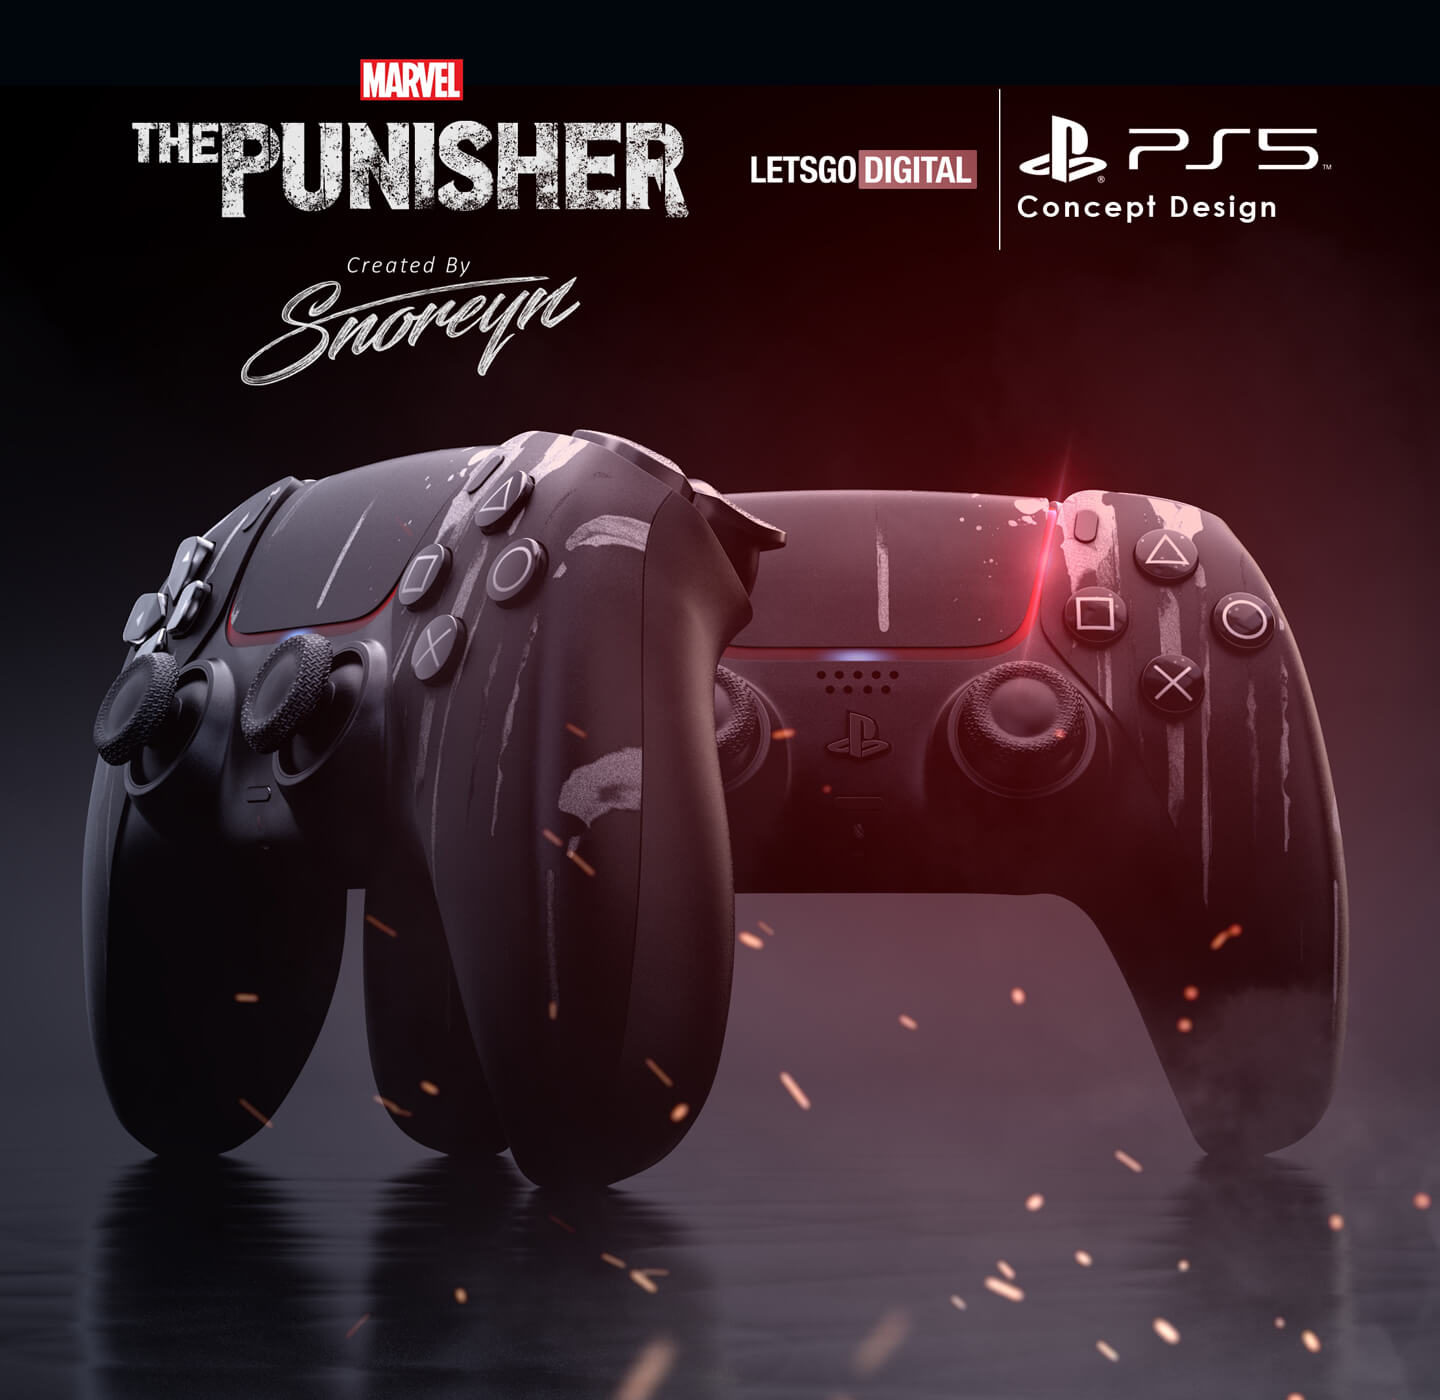 Covers Playstation 5